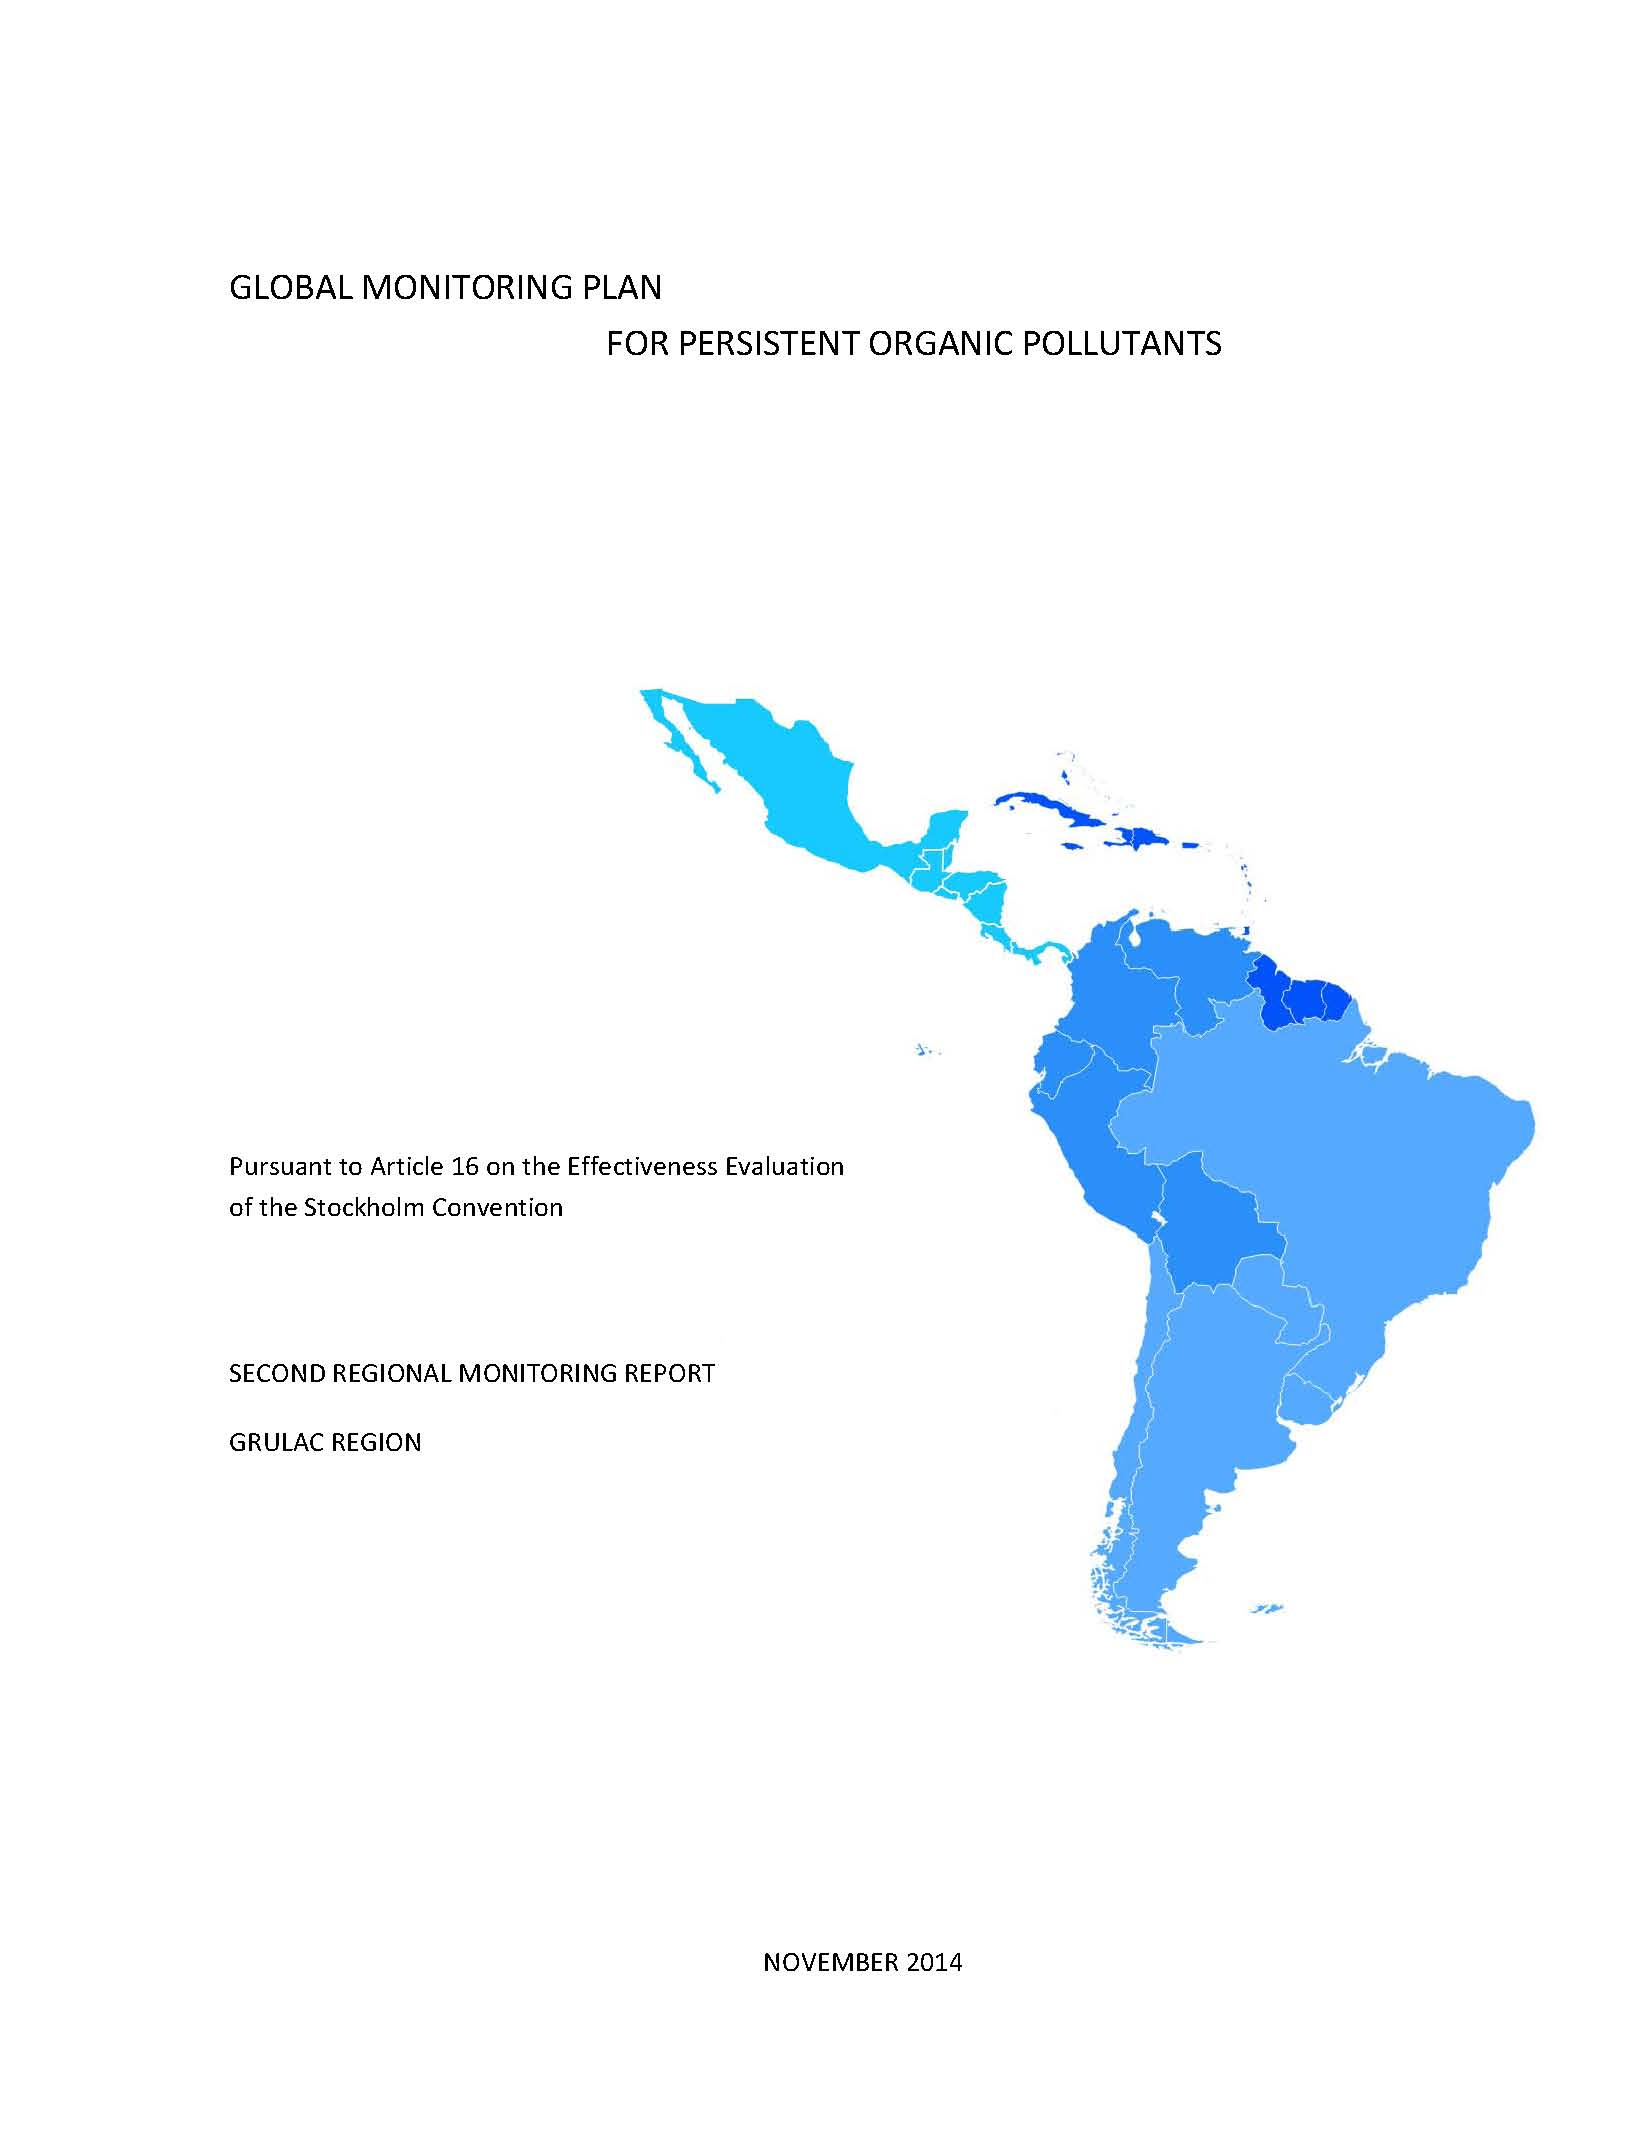 Latin America and the Caribbean (GRULAC)